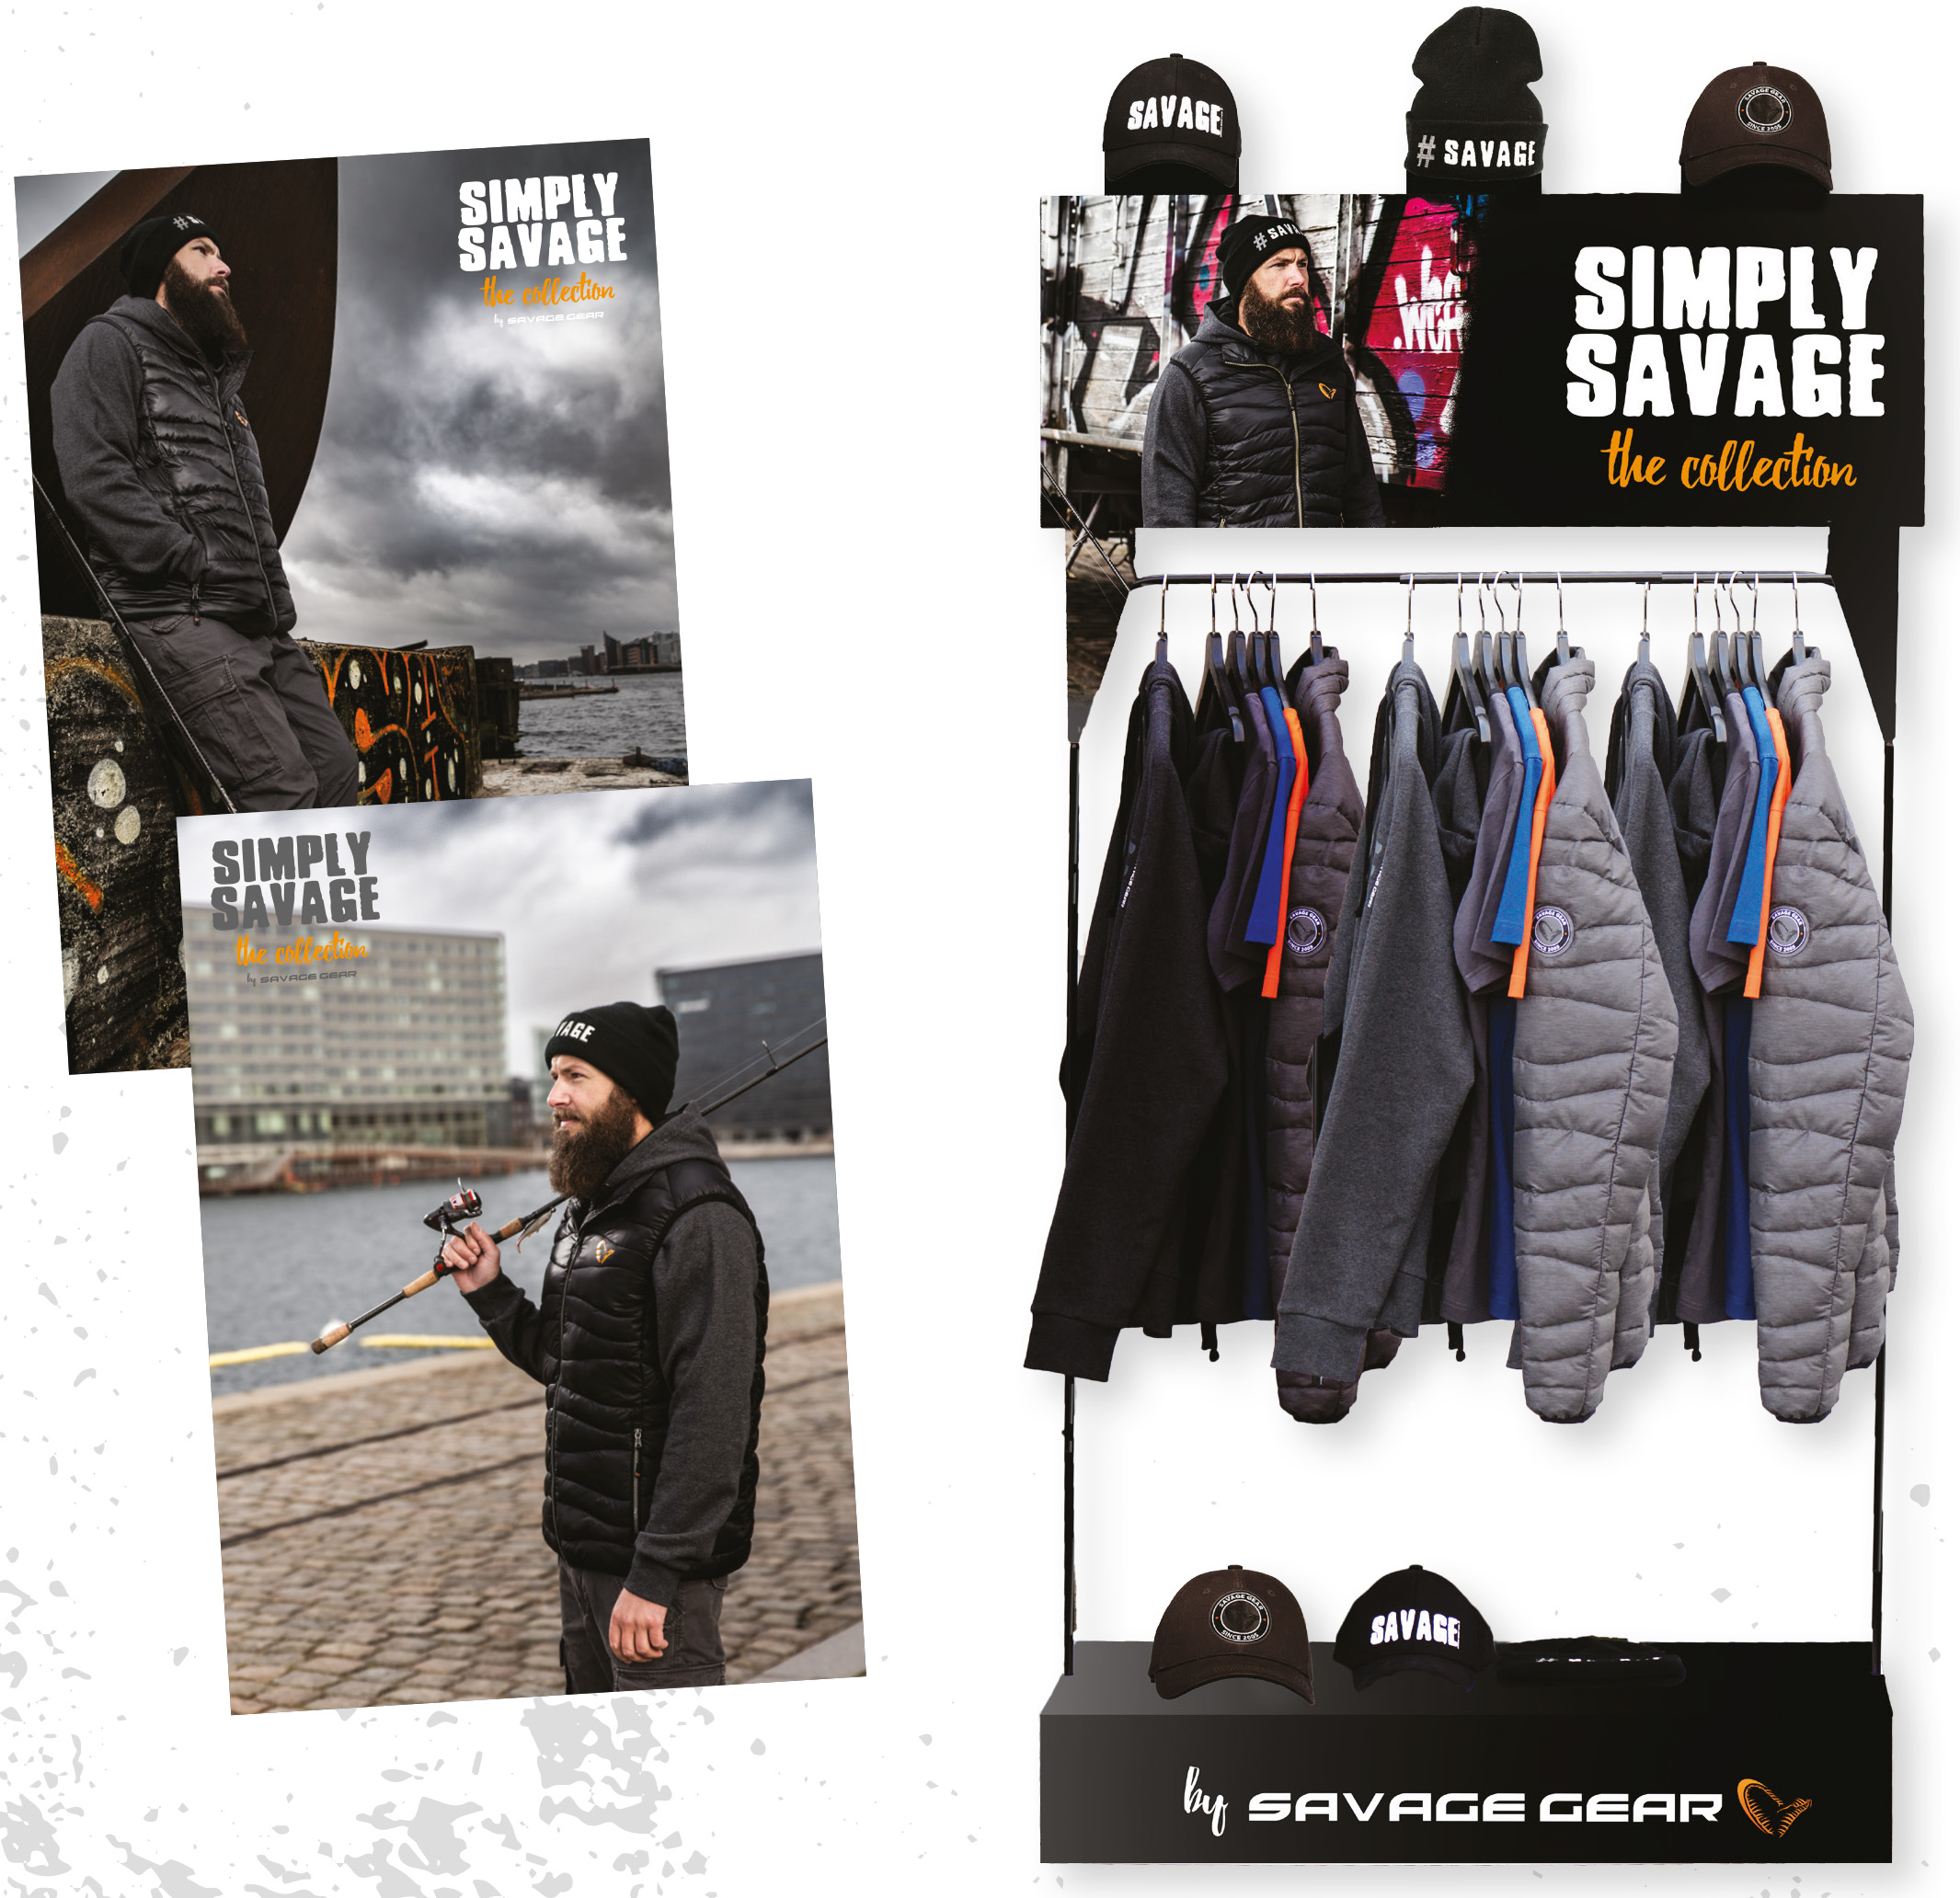 savage-gear_simply-savage-kollektion